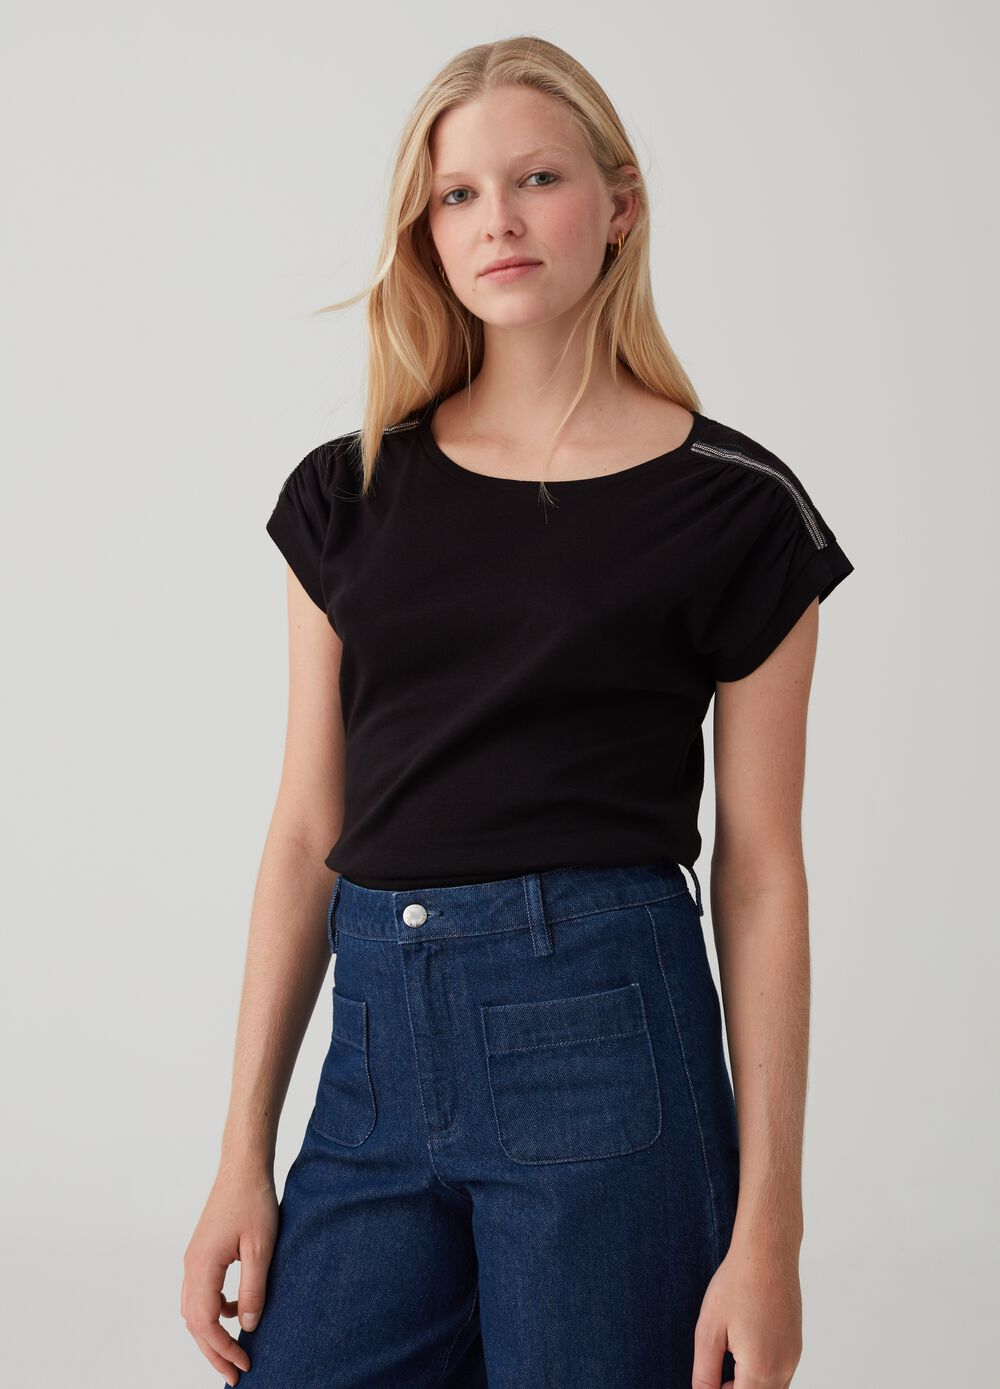 Cotton T-shirt with sequins on shoulders